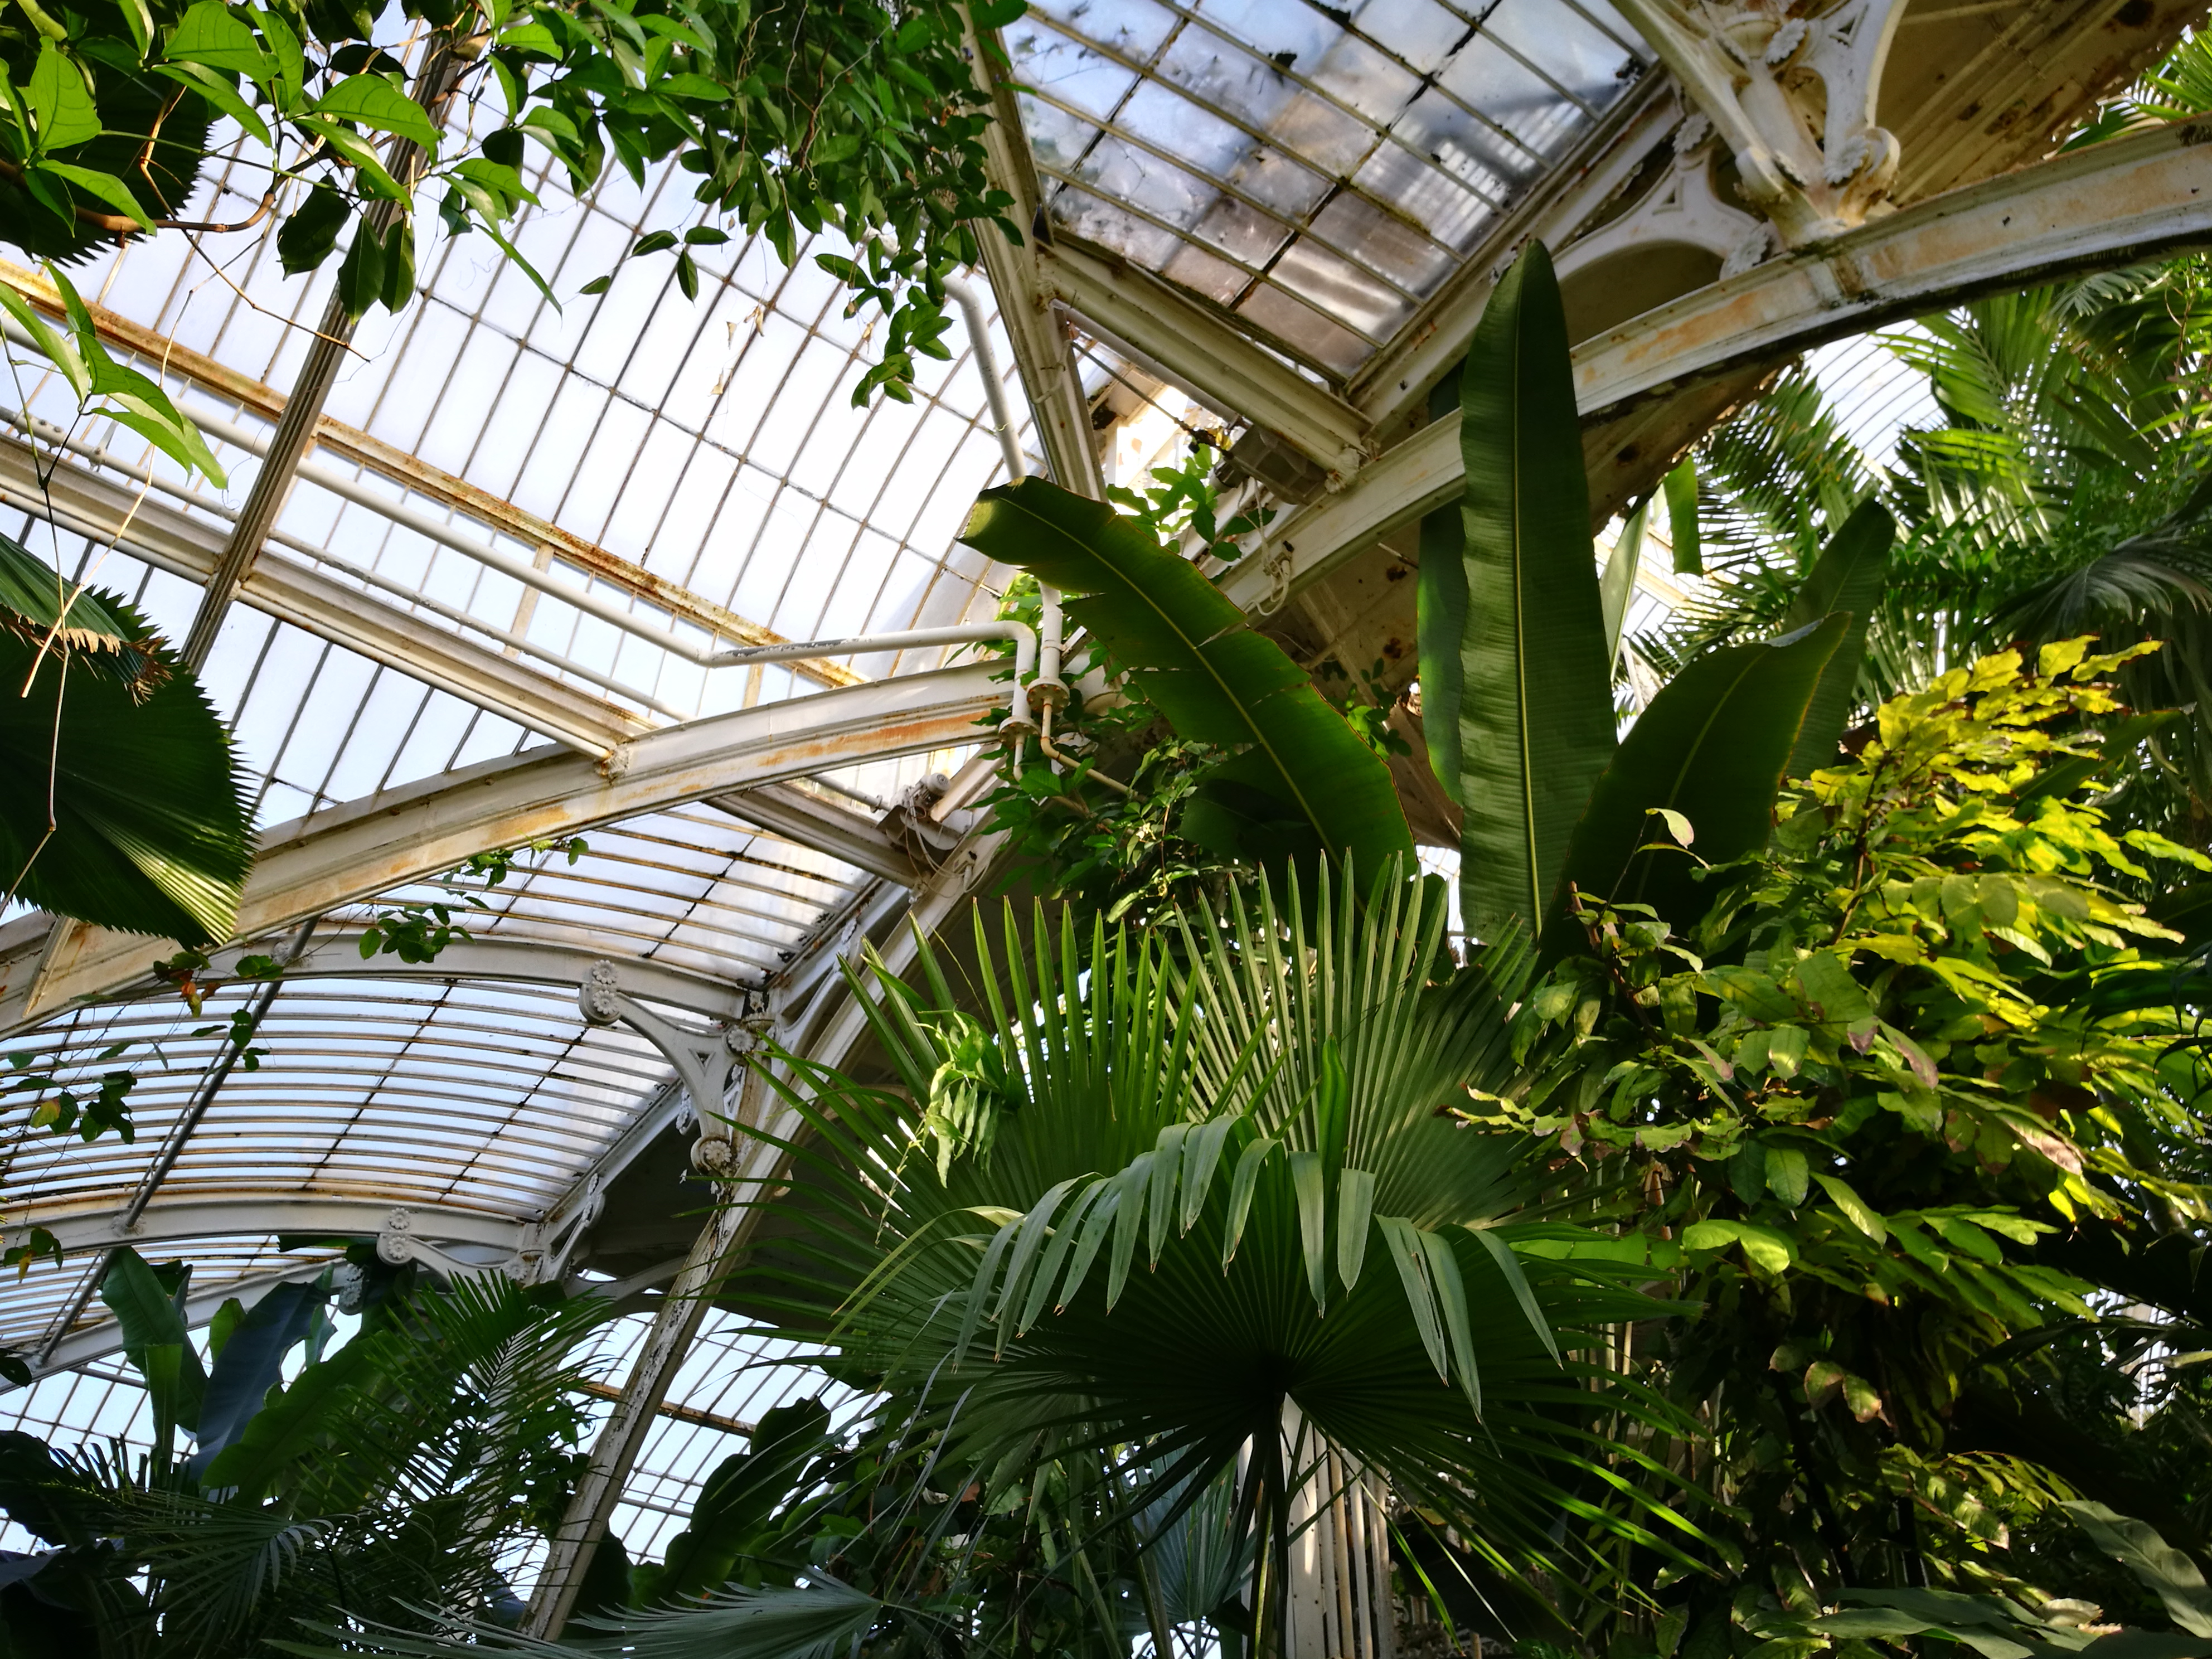 Interior of the palm house, looking upwards.